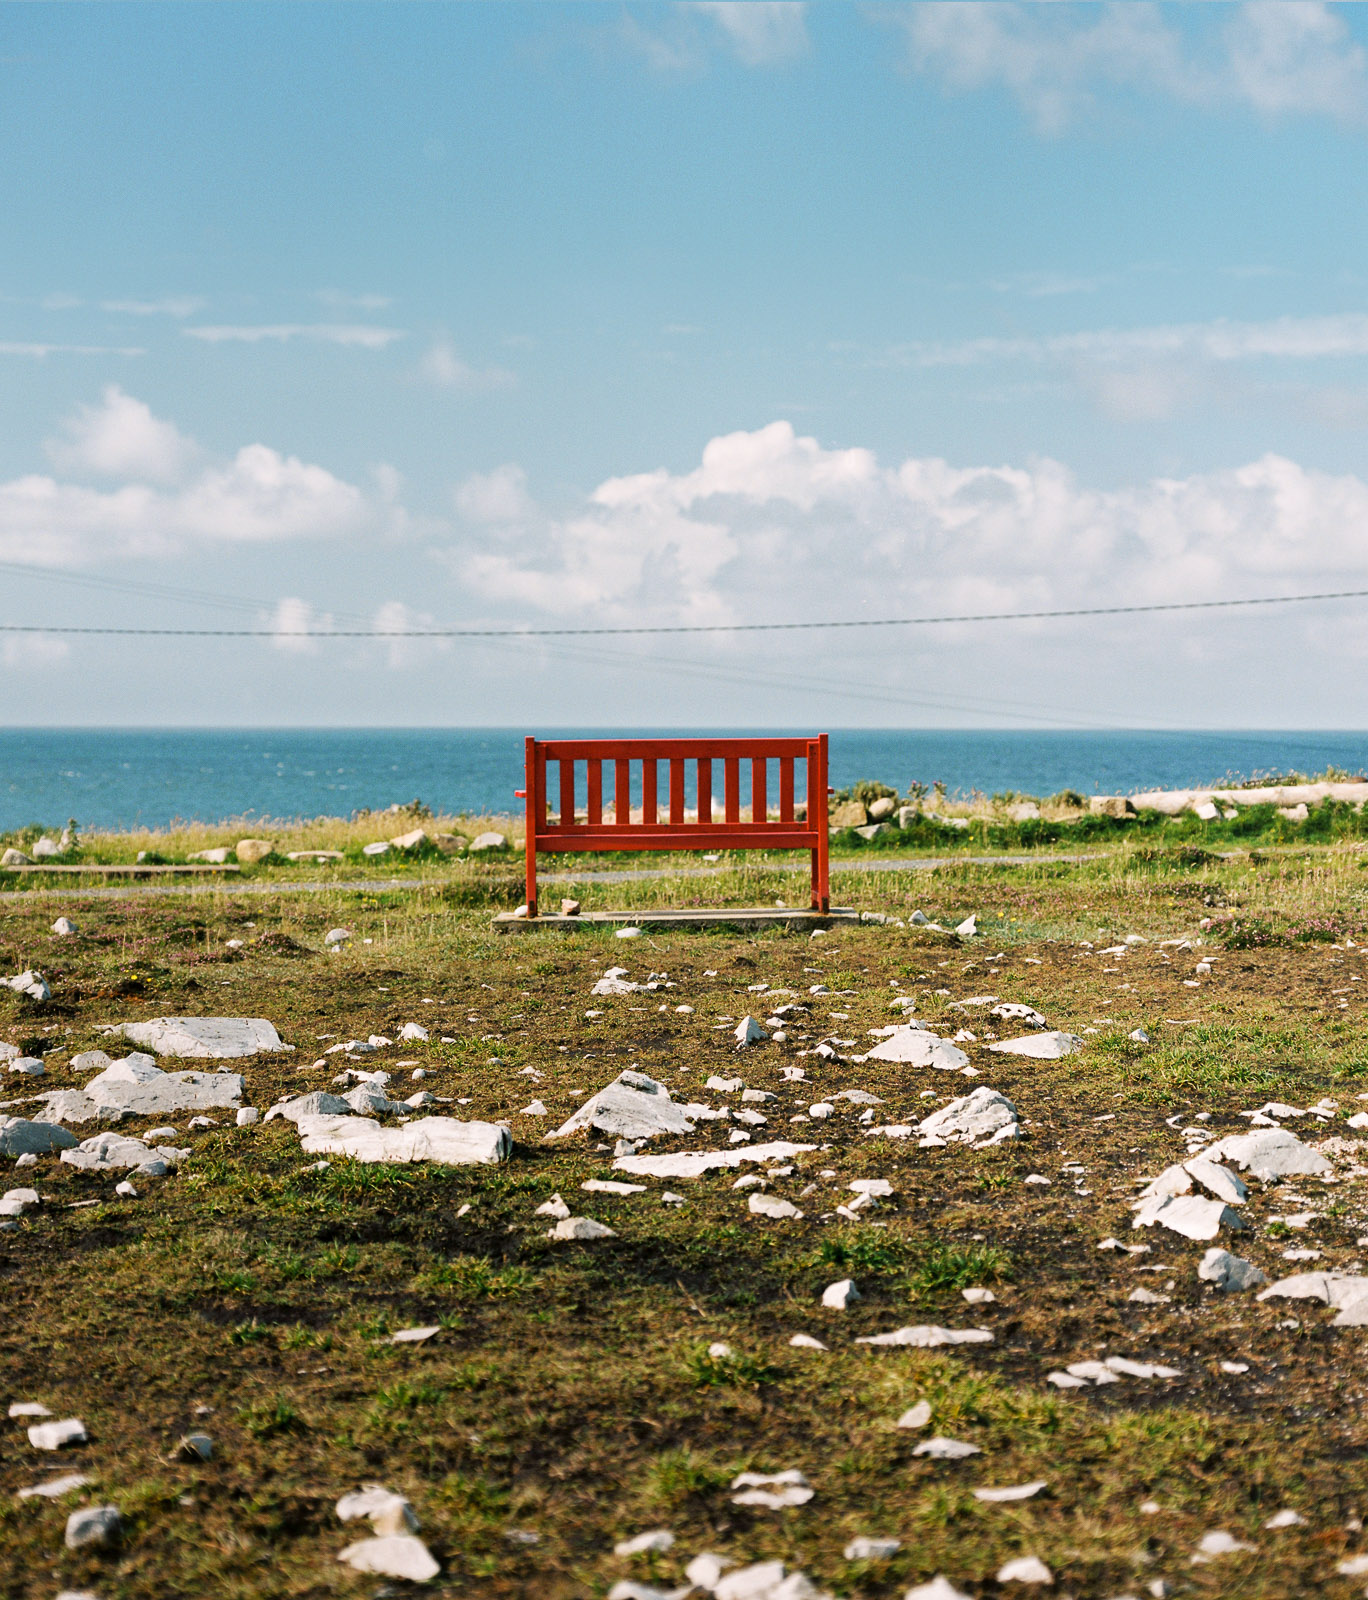 Bench, Tory Island, County Donegal, Republic of Ireland. ©Laurence Gibson